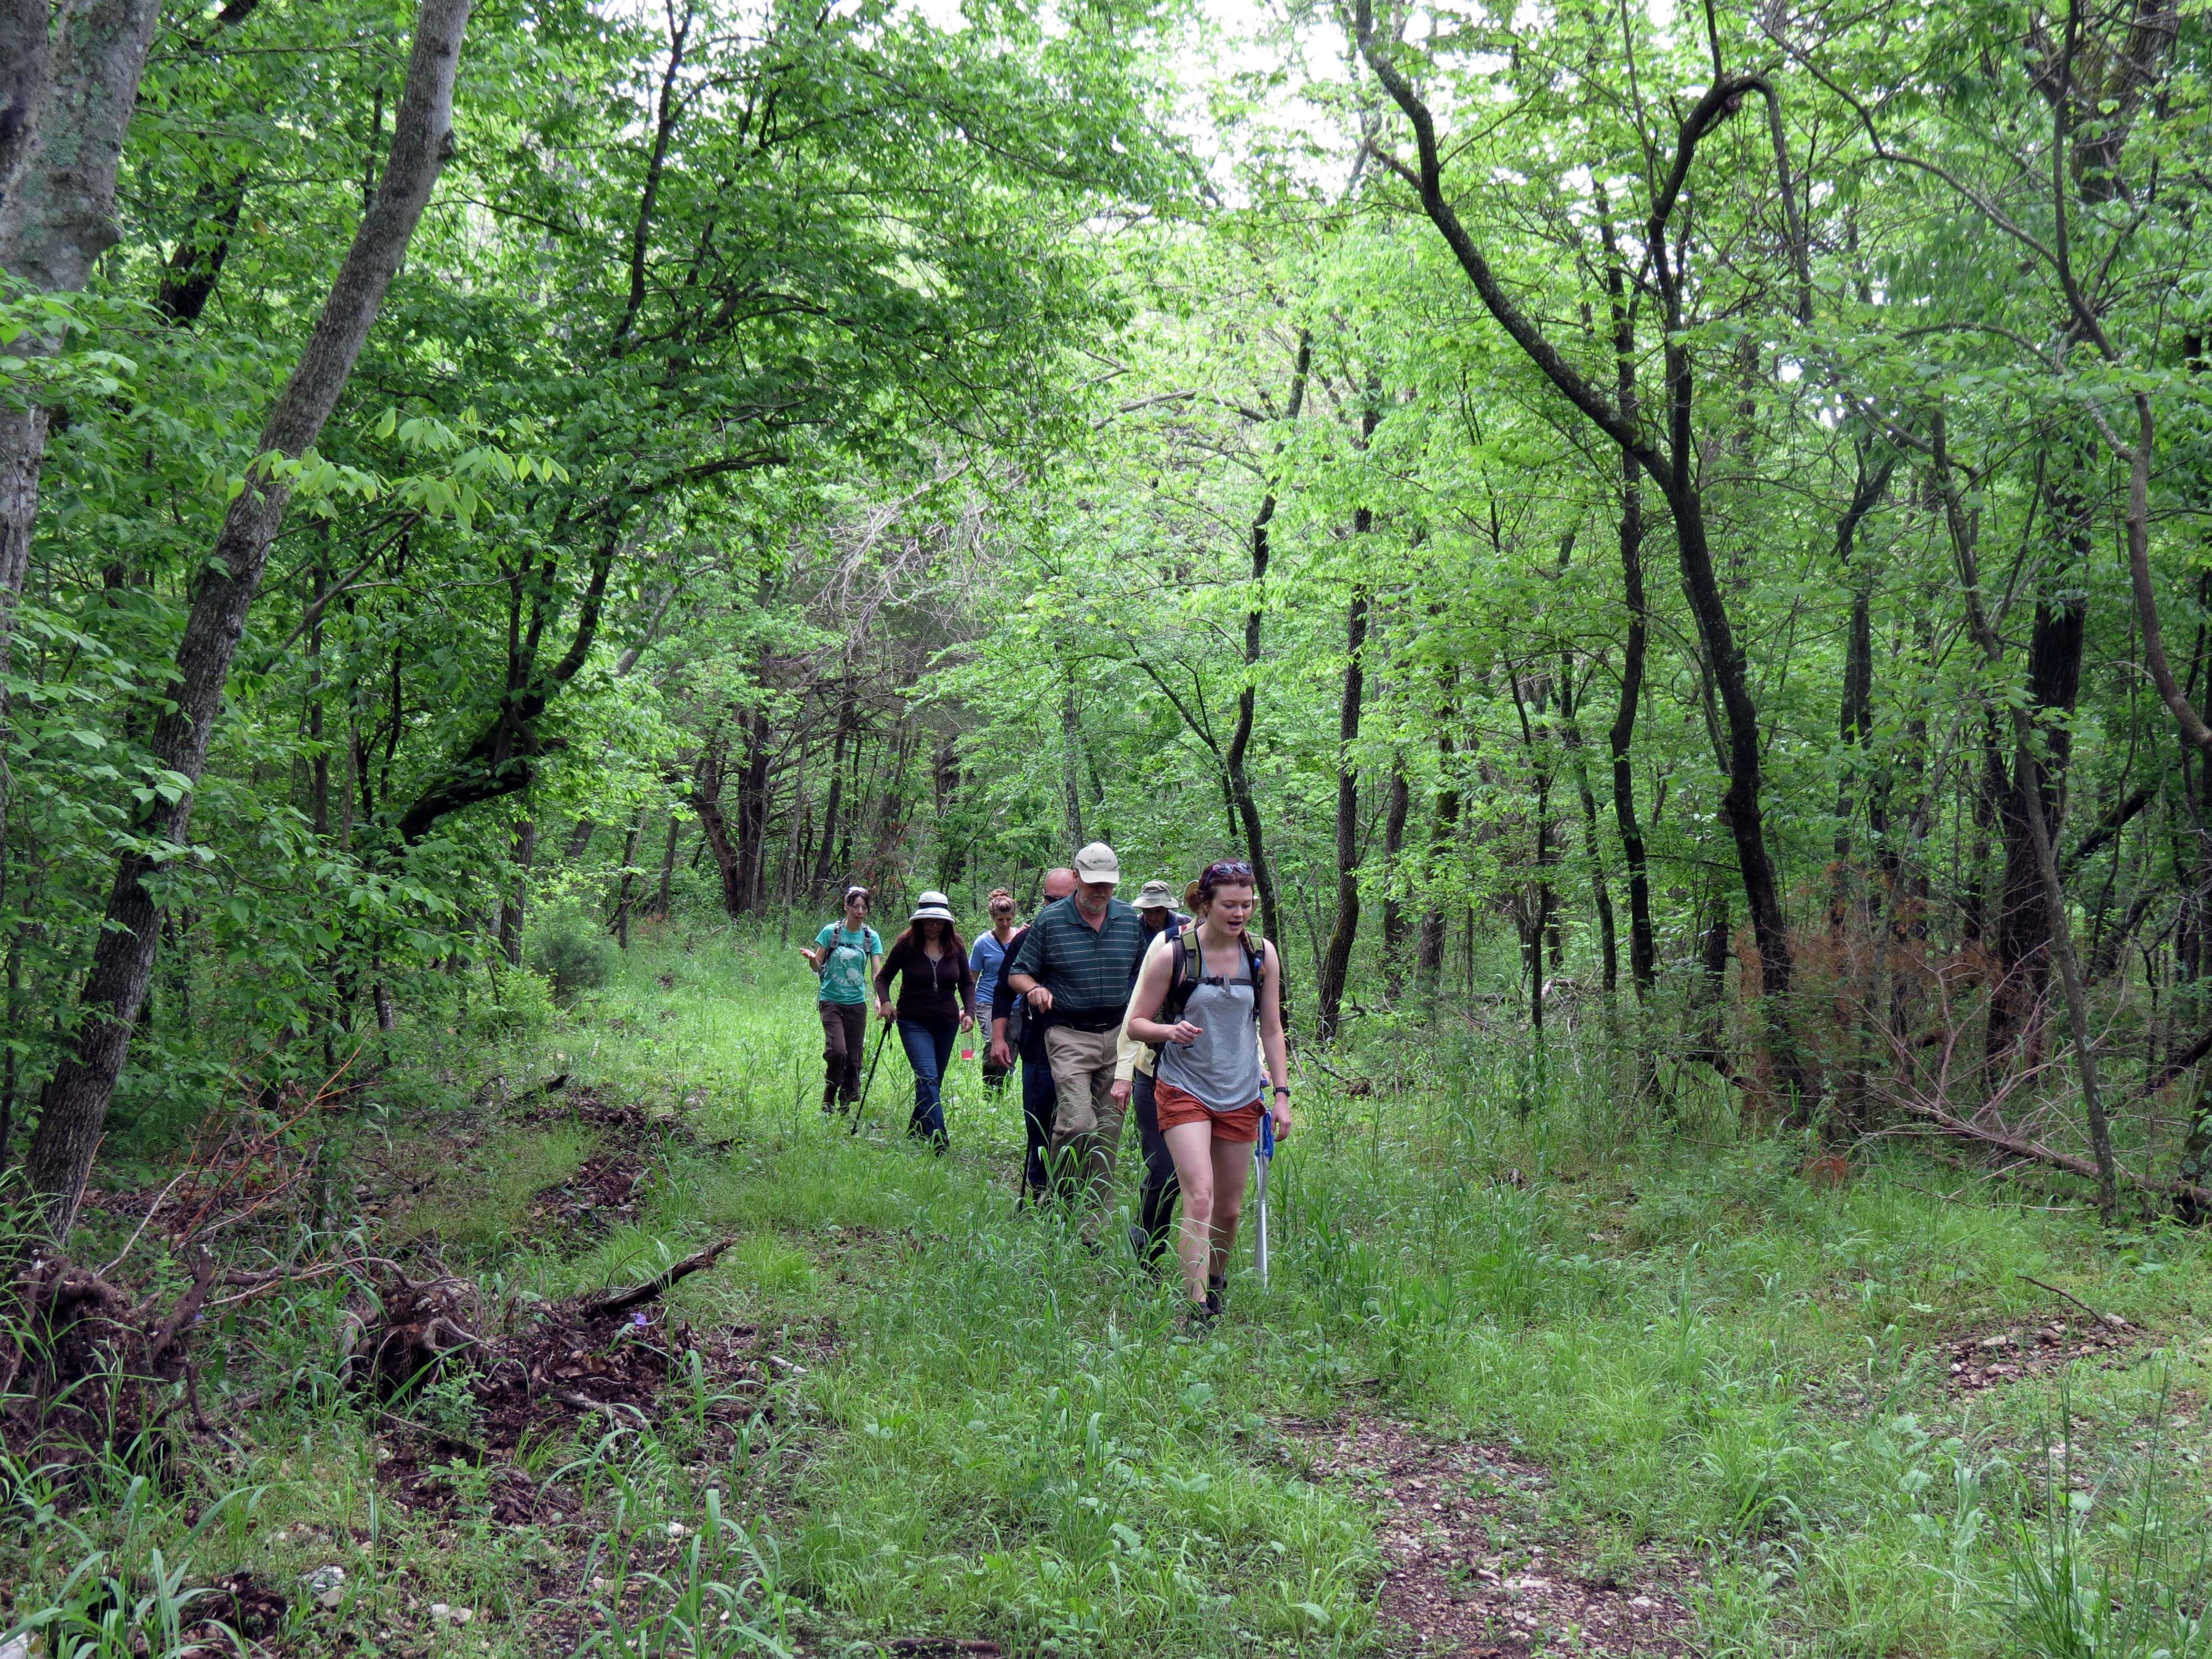 Hikers on the trail.